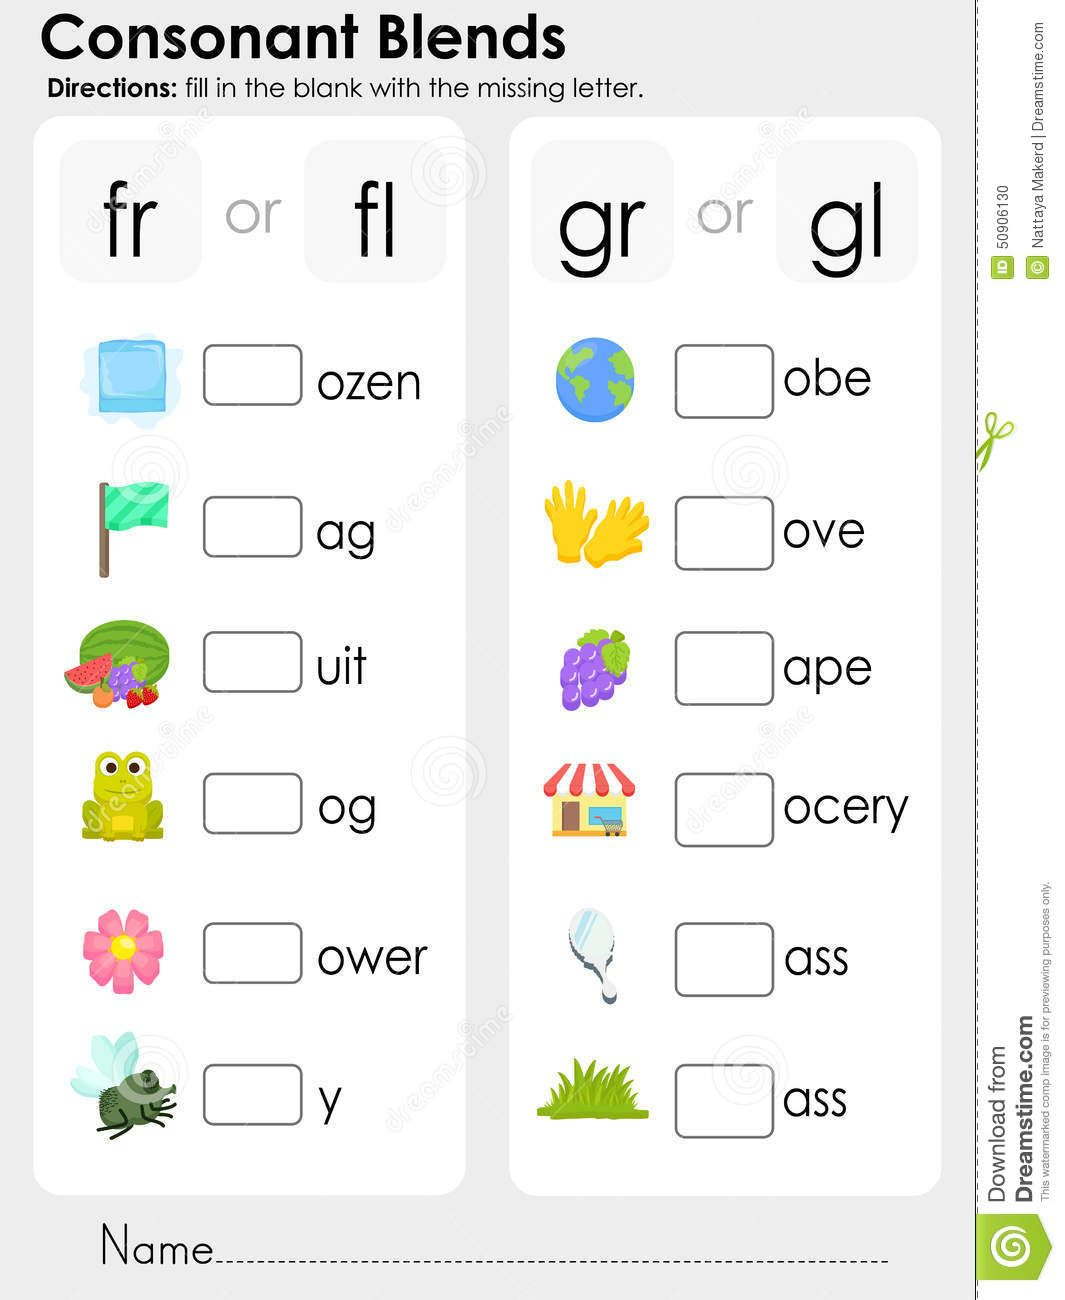 Worksheets Consonant Blends Worksheets consonant blends missing letter worksheet for education stock vector image 50906130